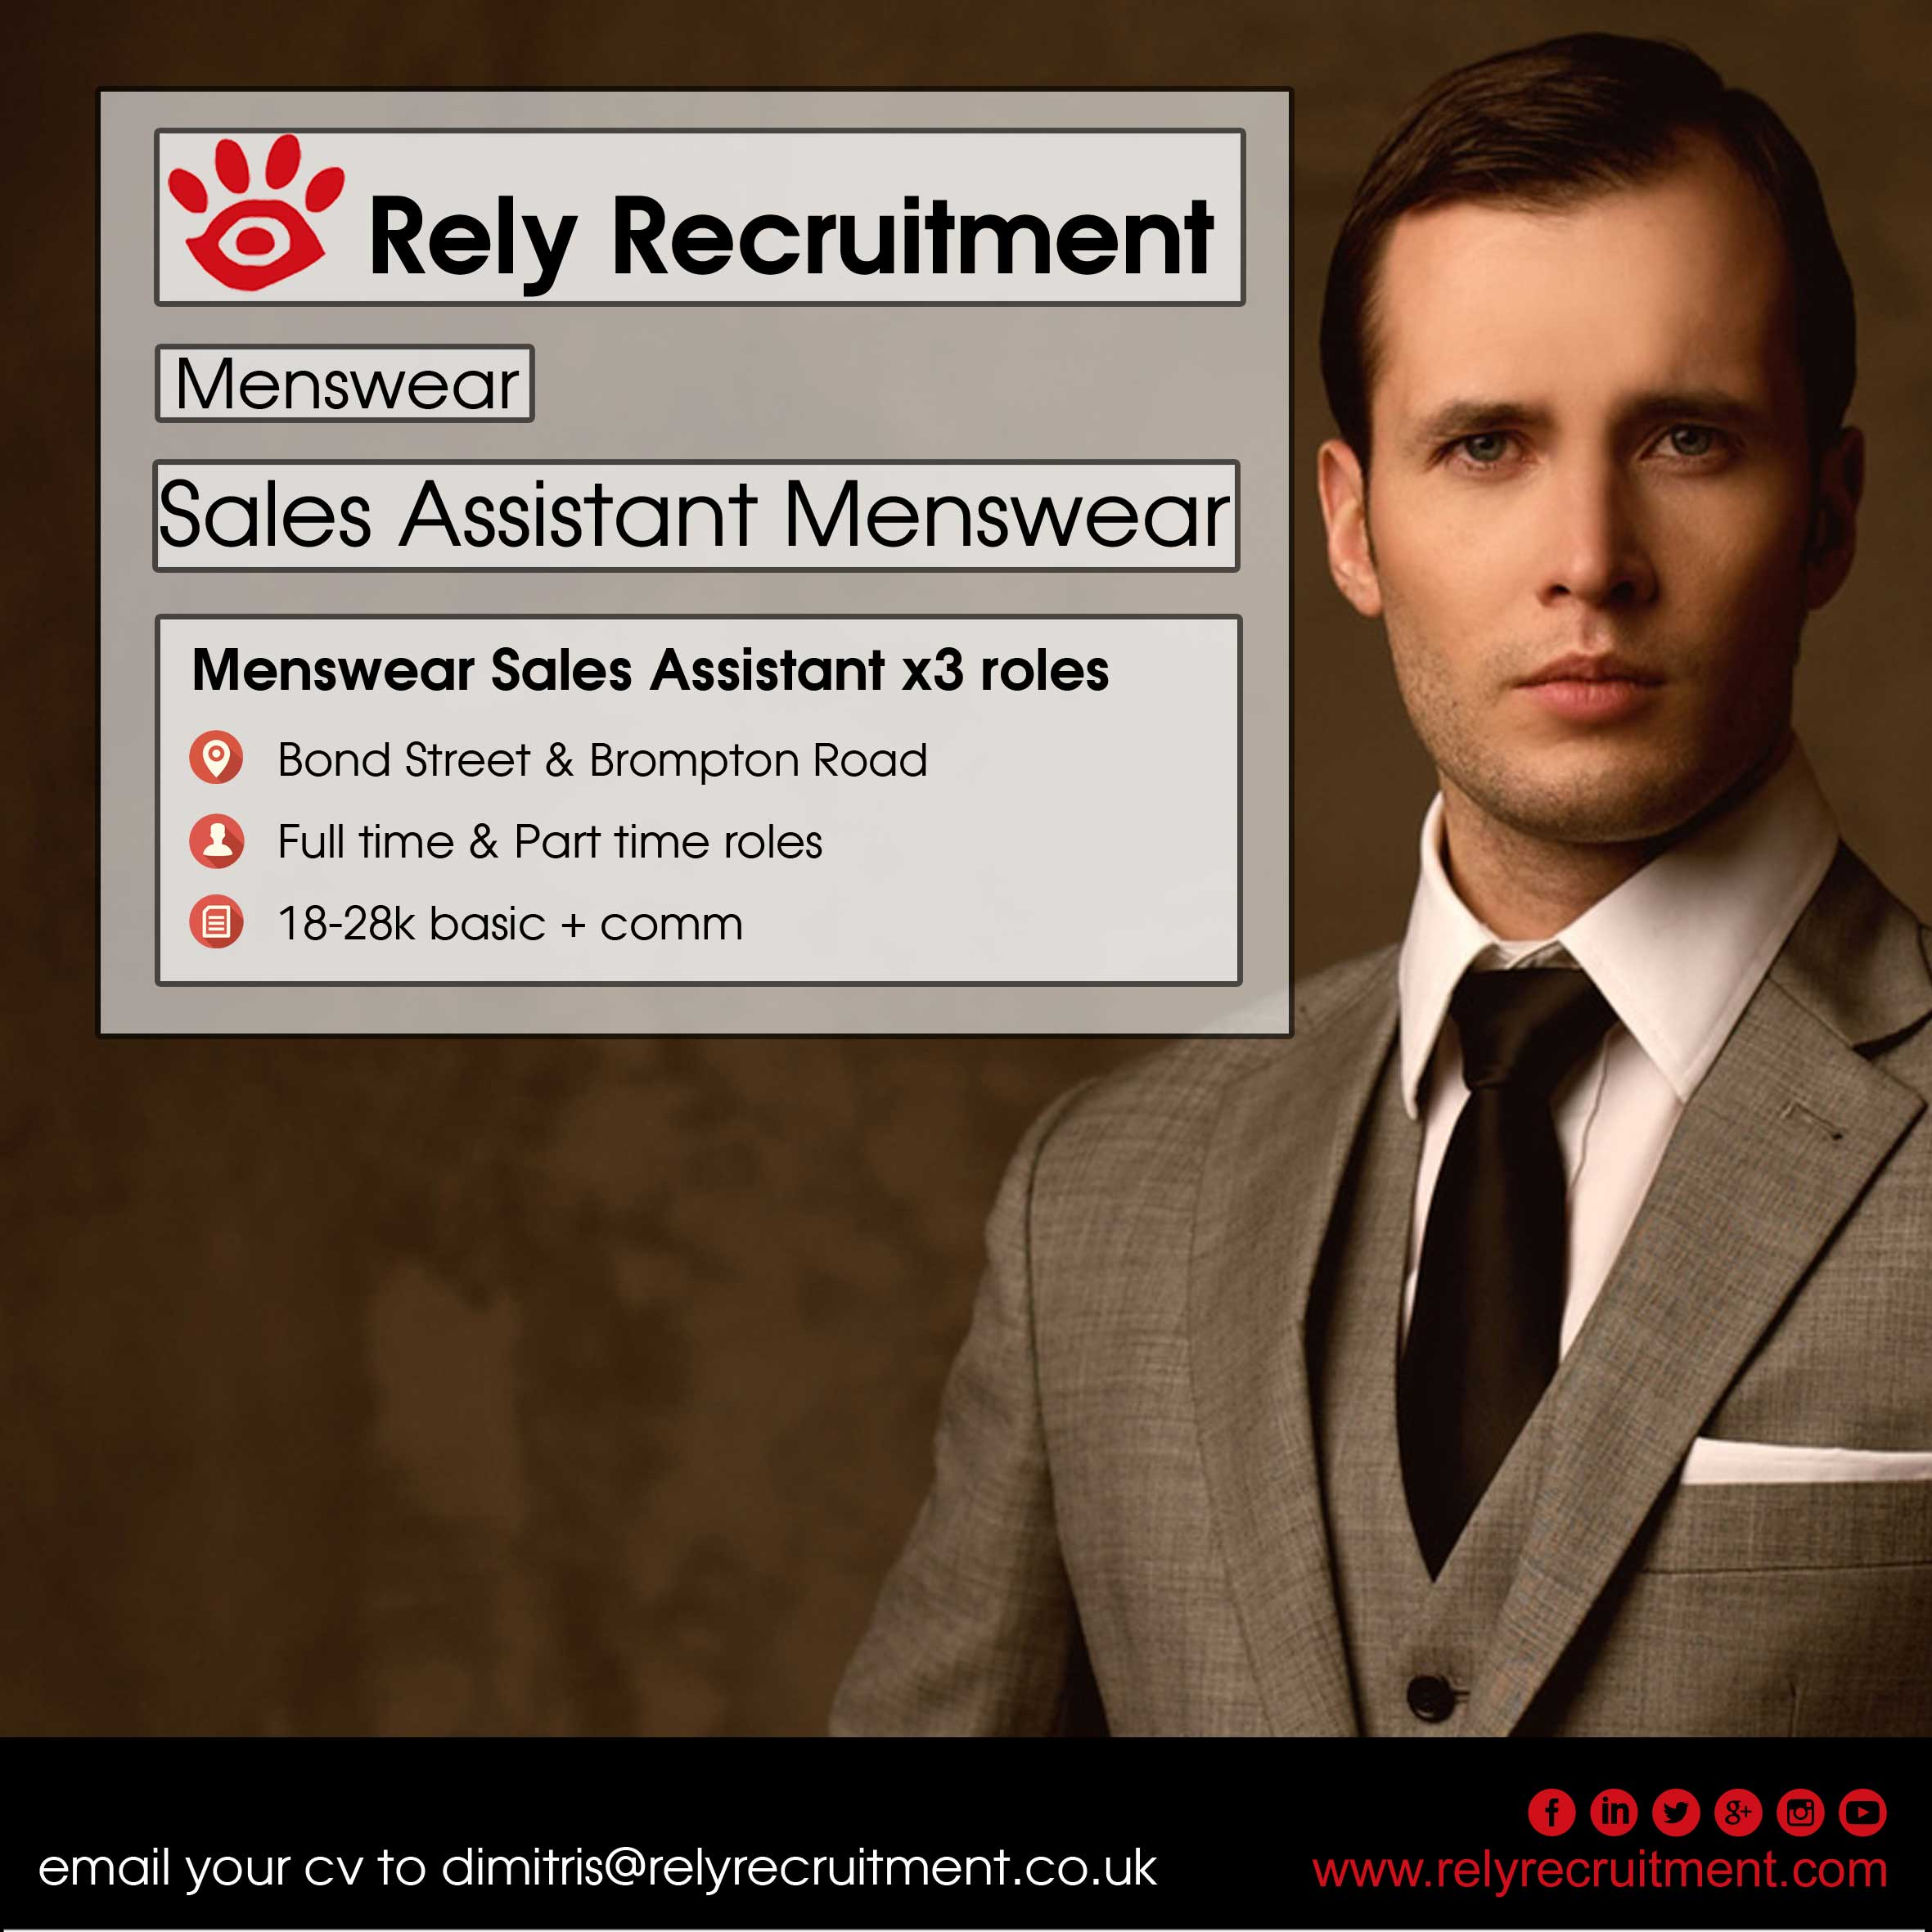 luxury menswear s assistant rely recruitment